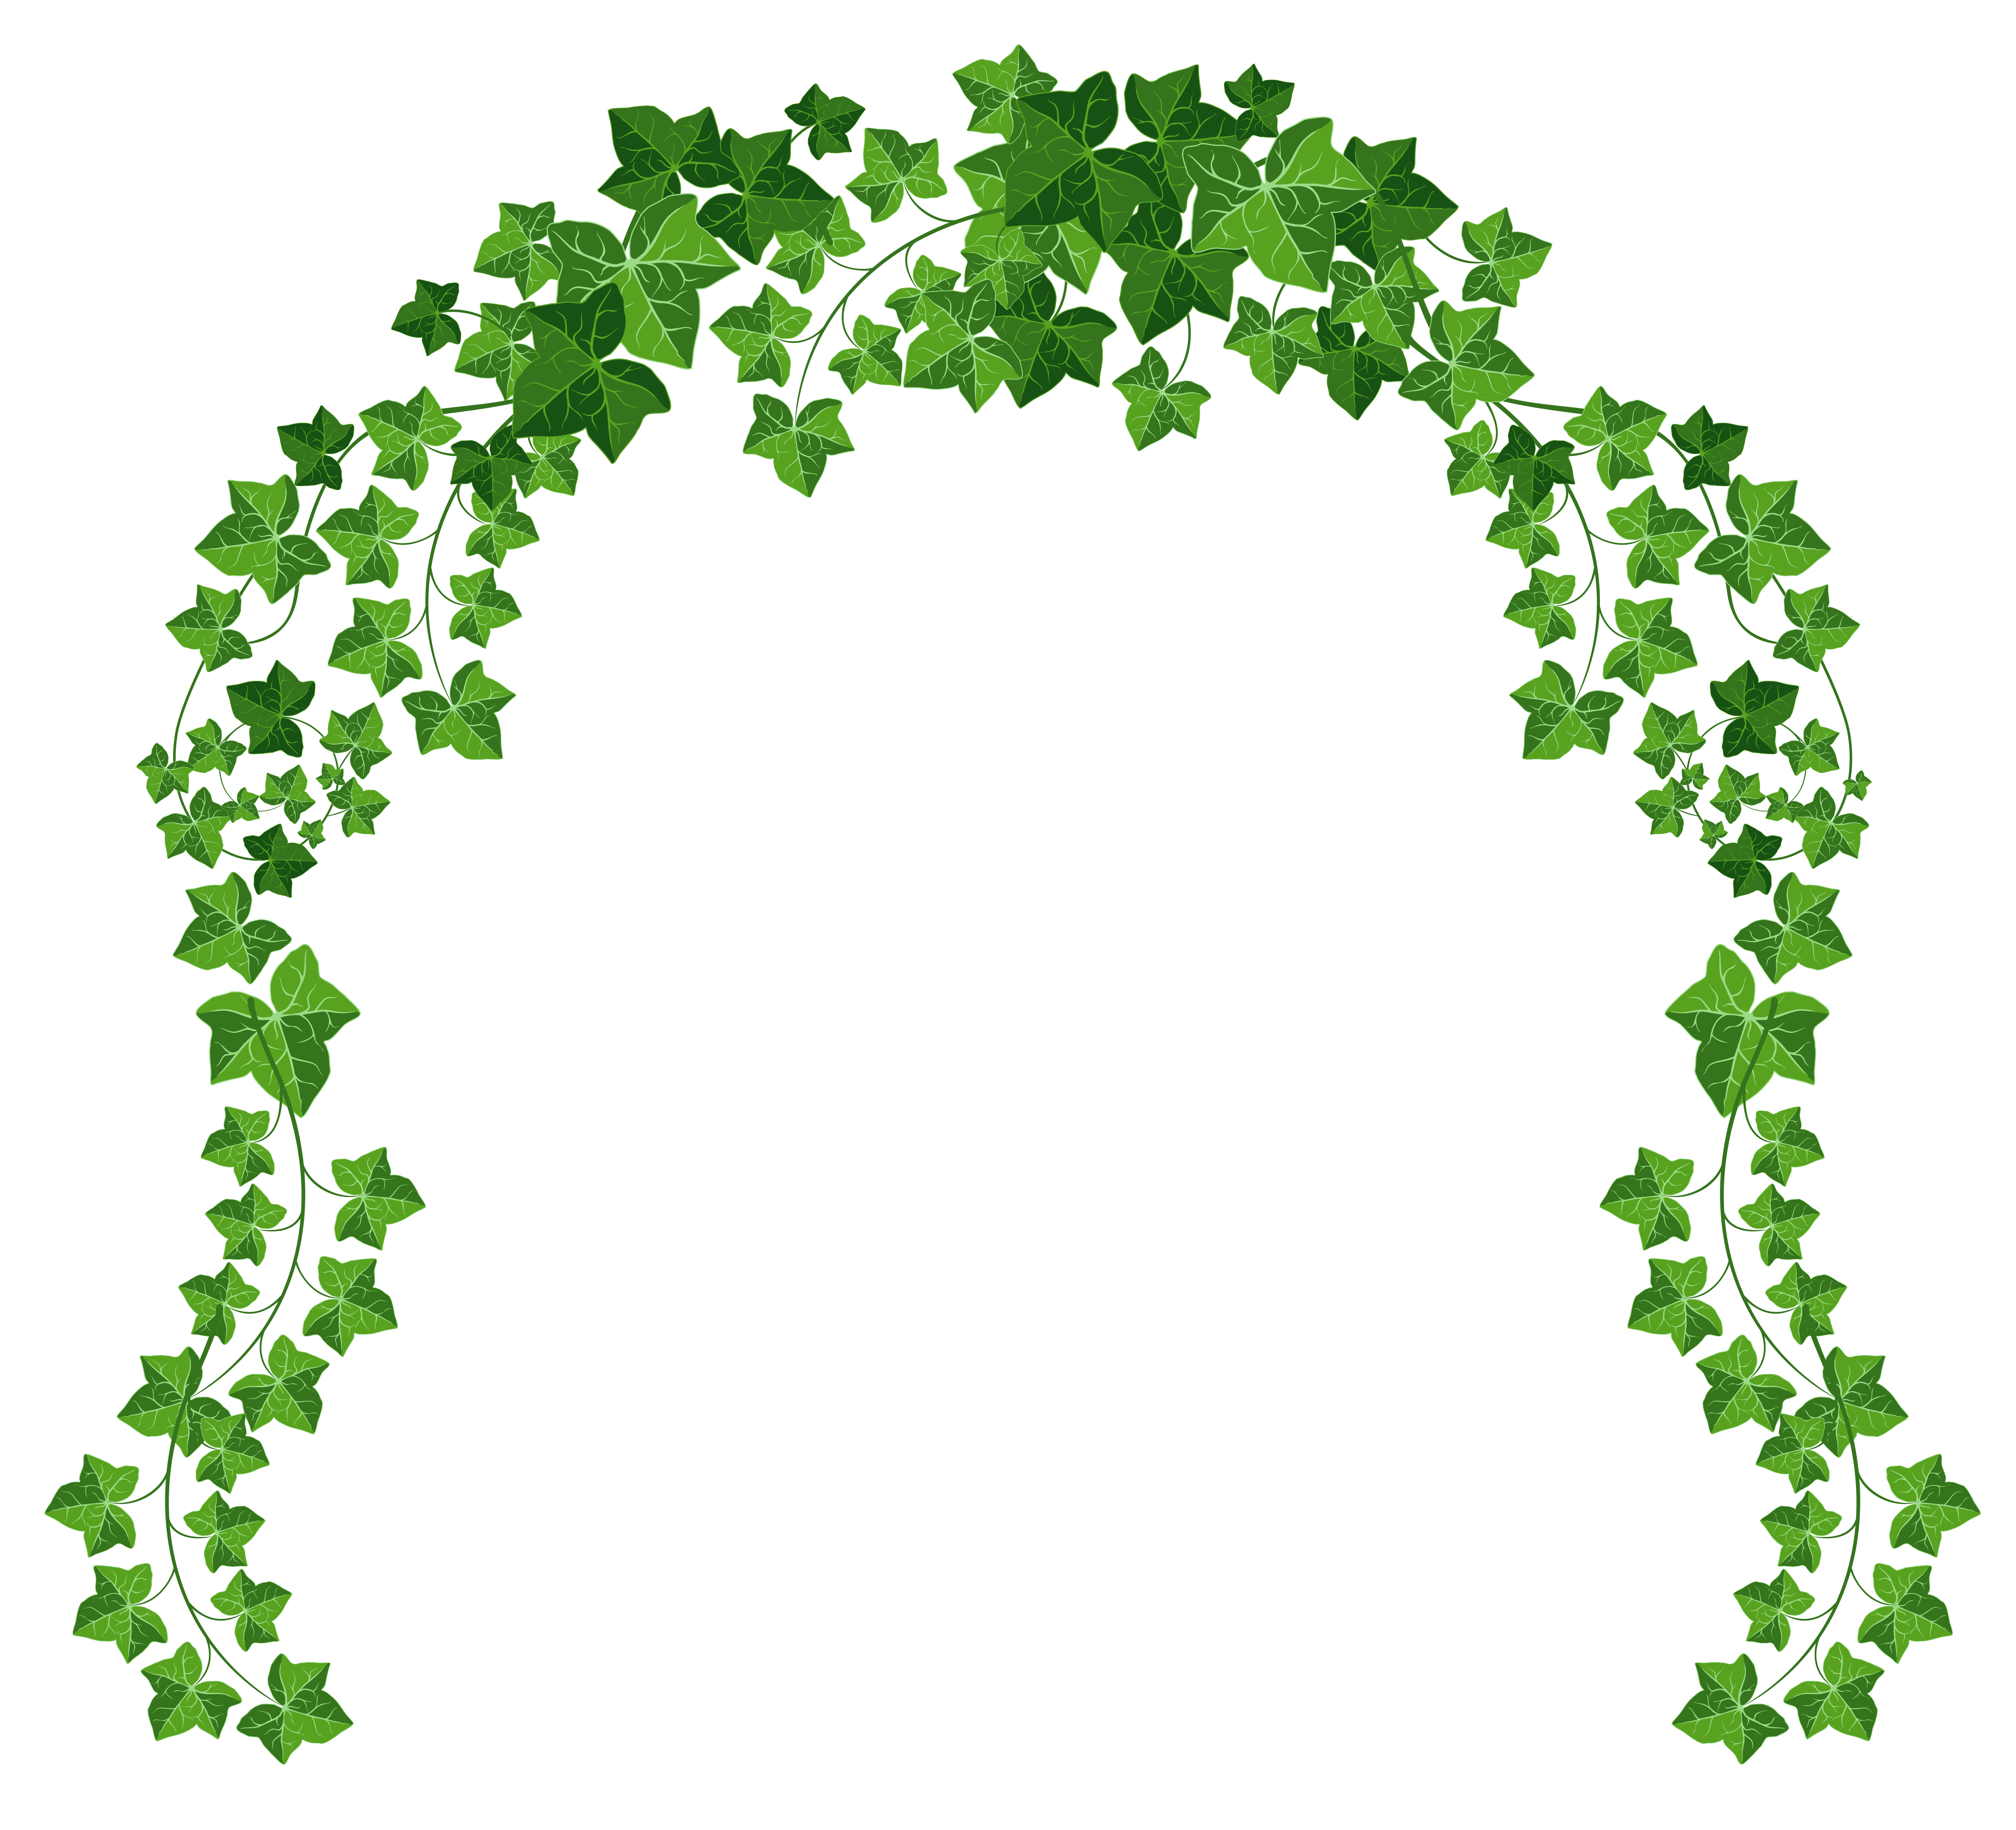 Free Hanging Vines Png, Download Free Clip Art, Free Clip.